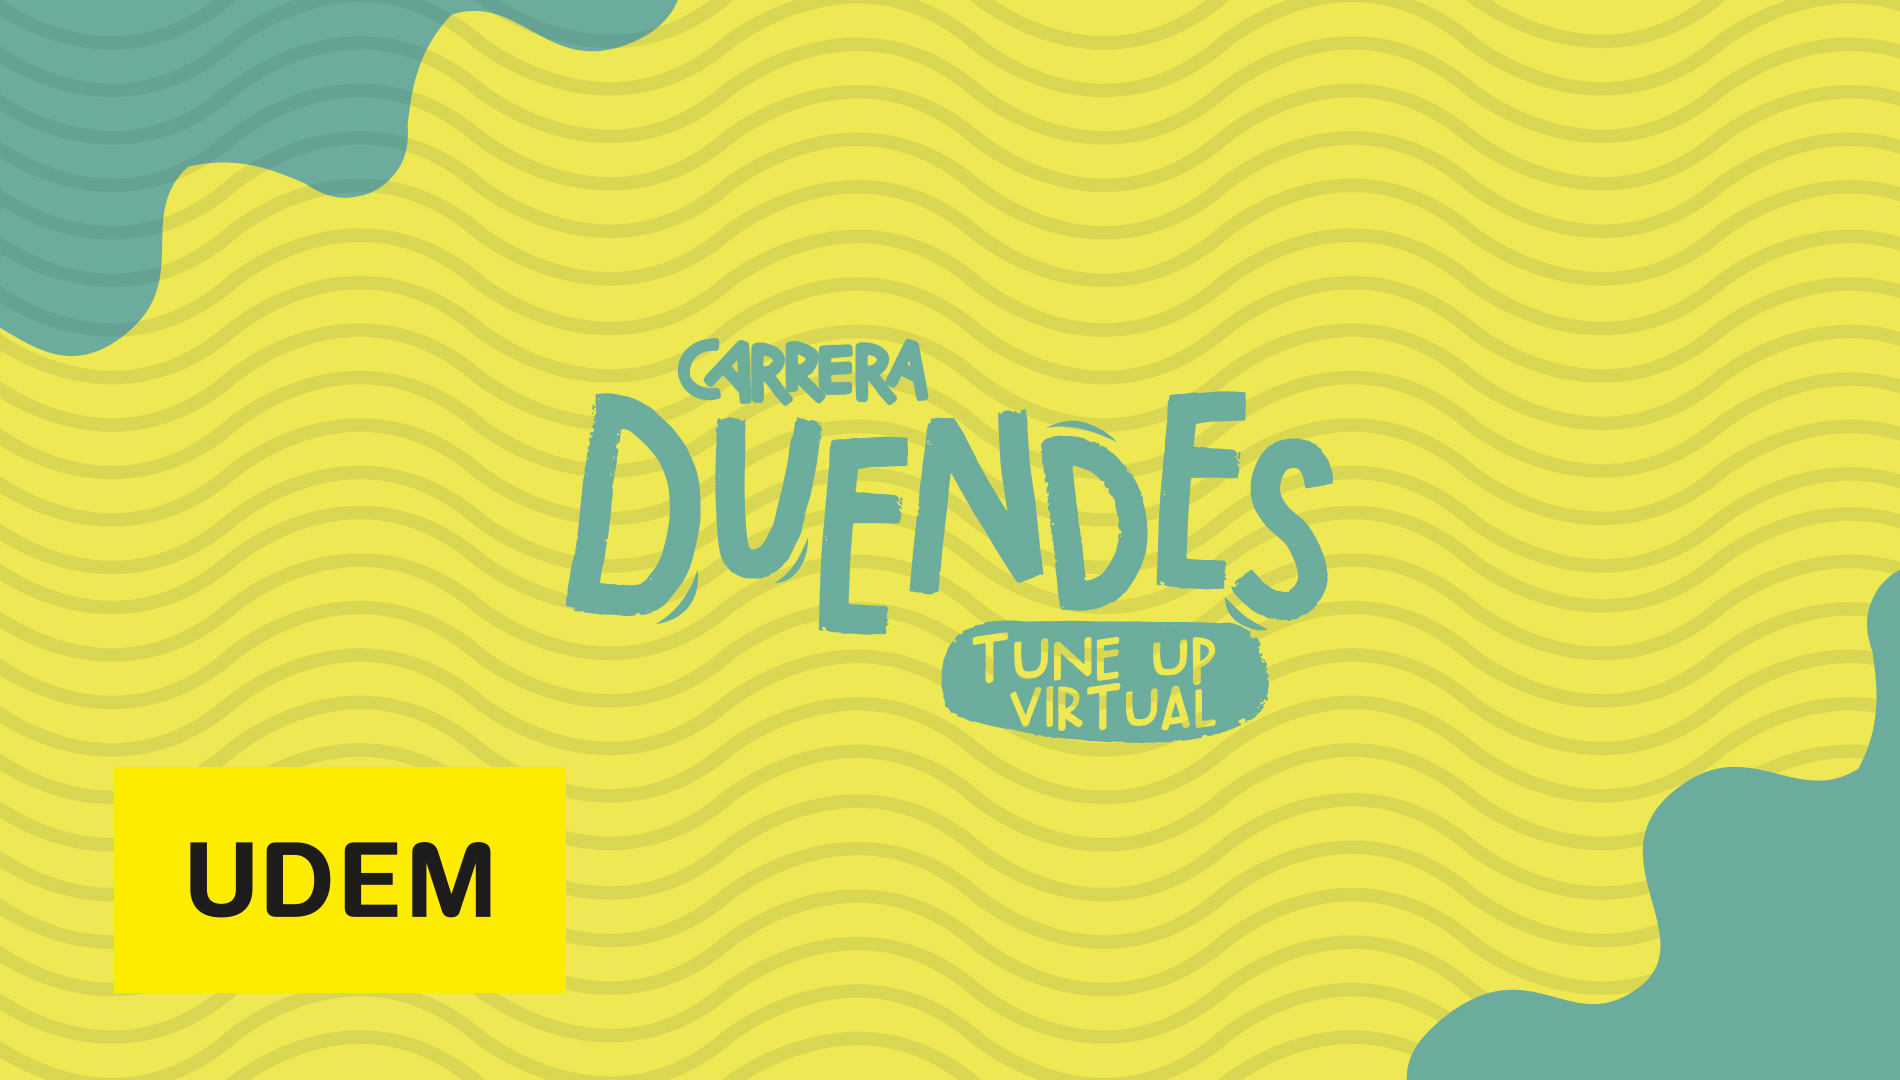 CARRERA DUENDES TUNE UP VIRTUAL